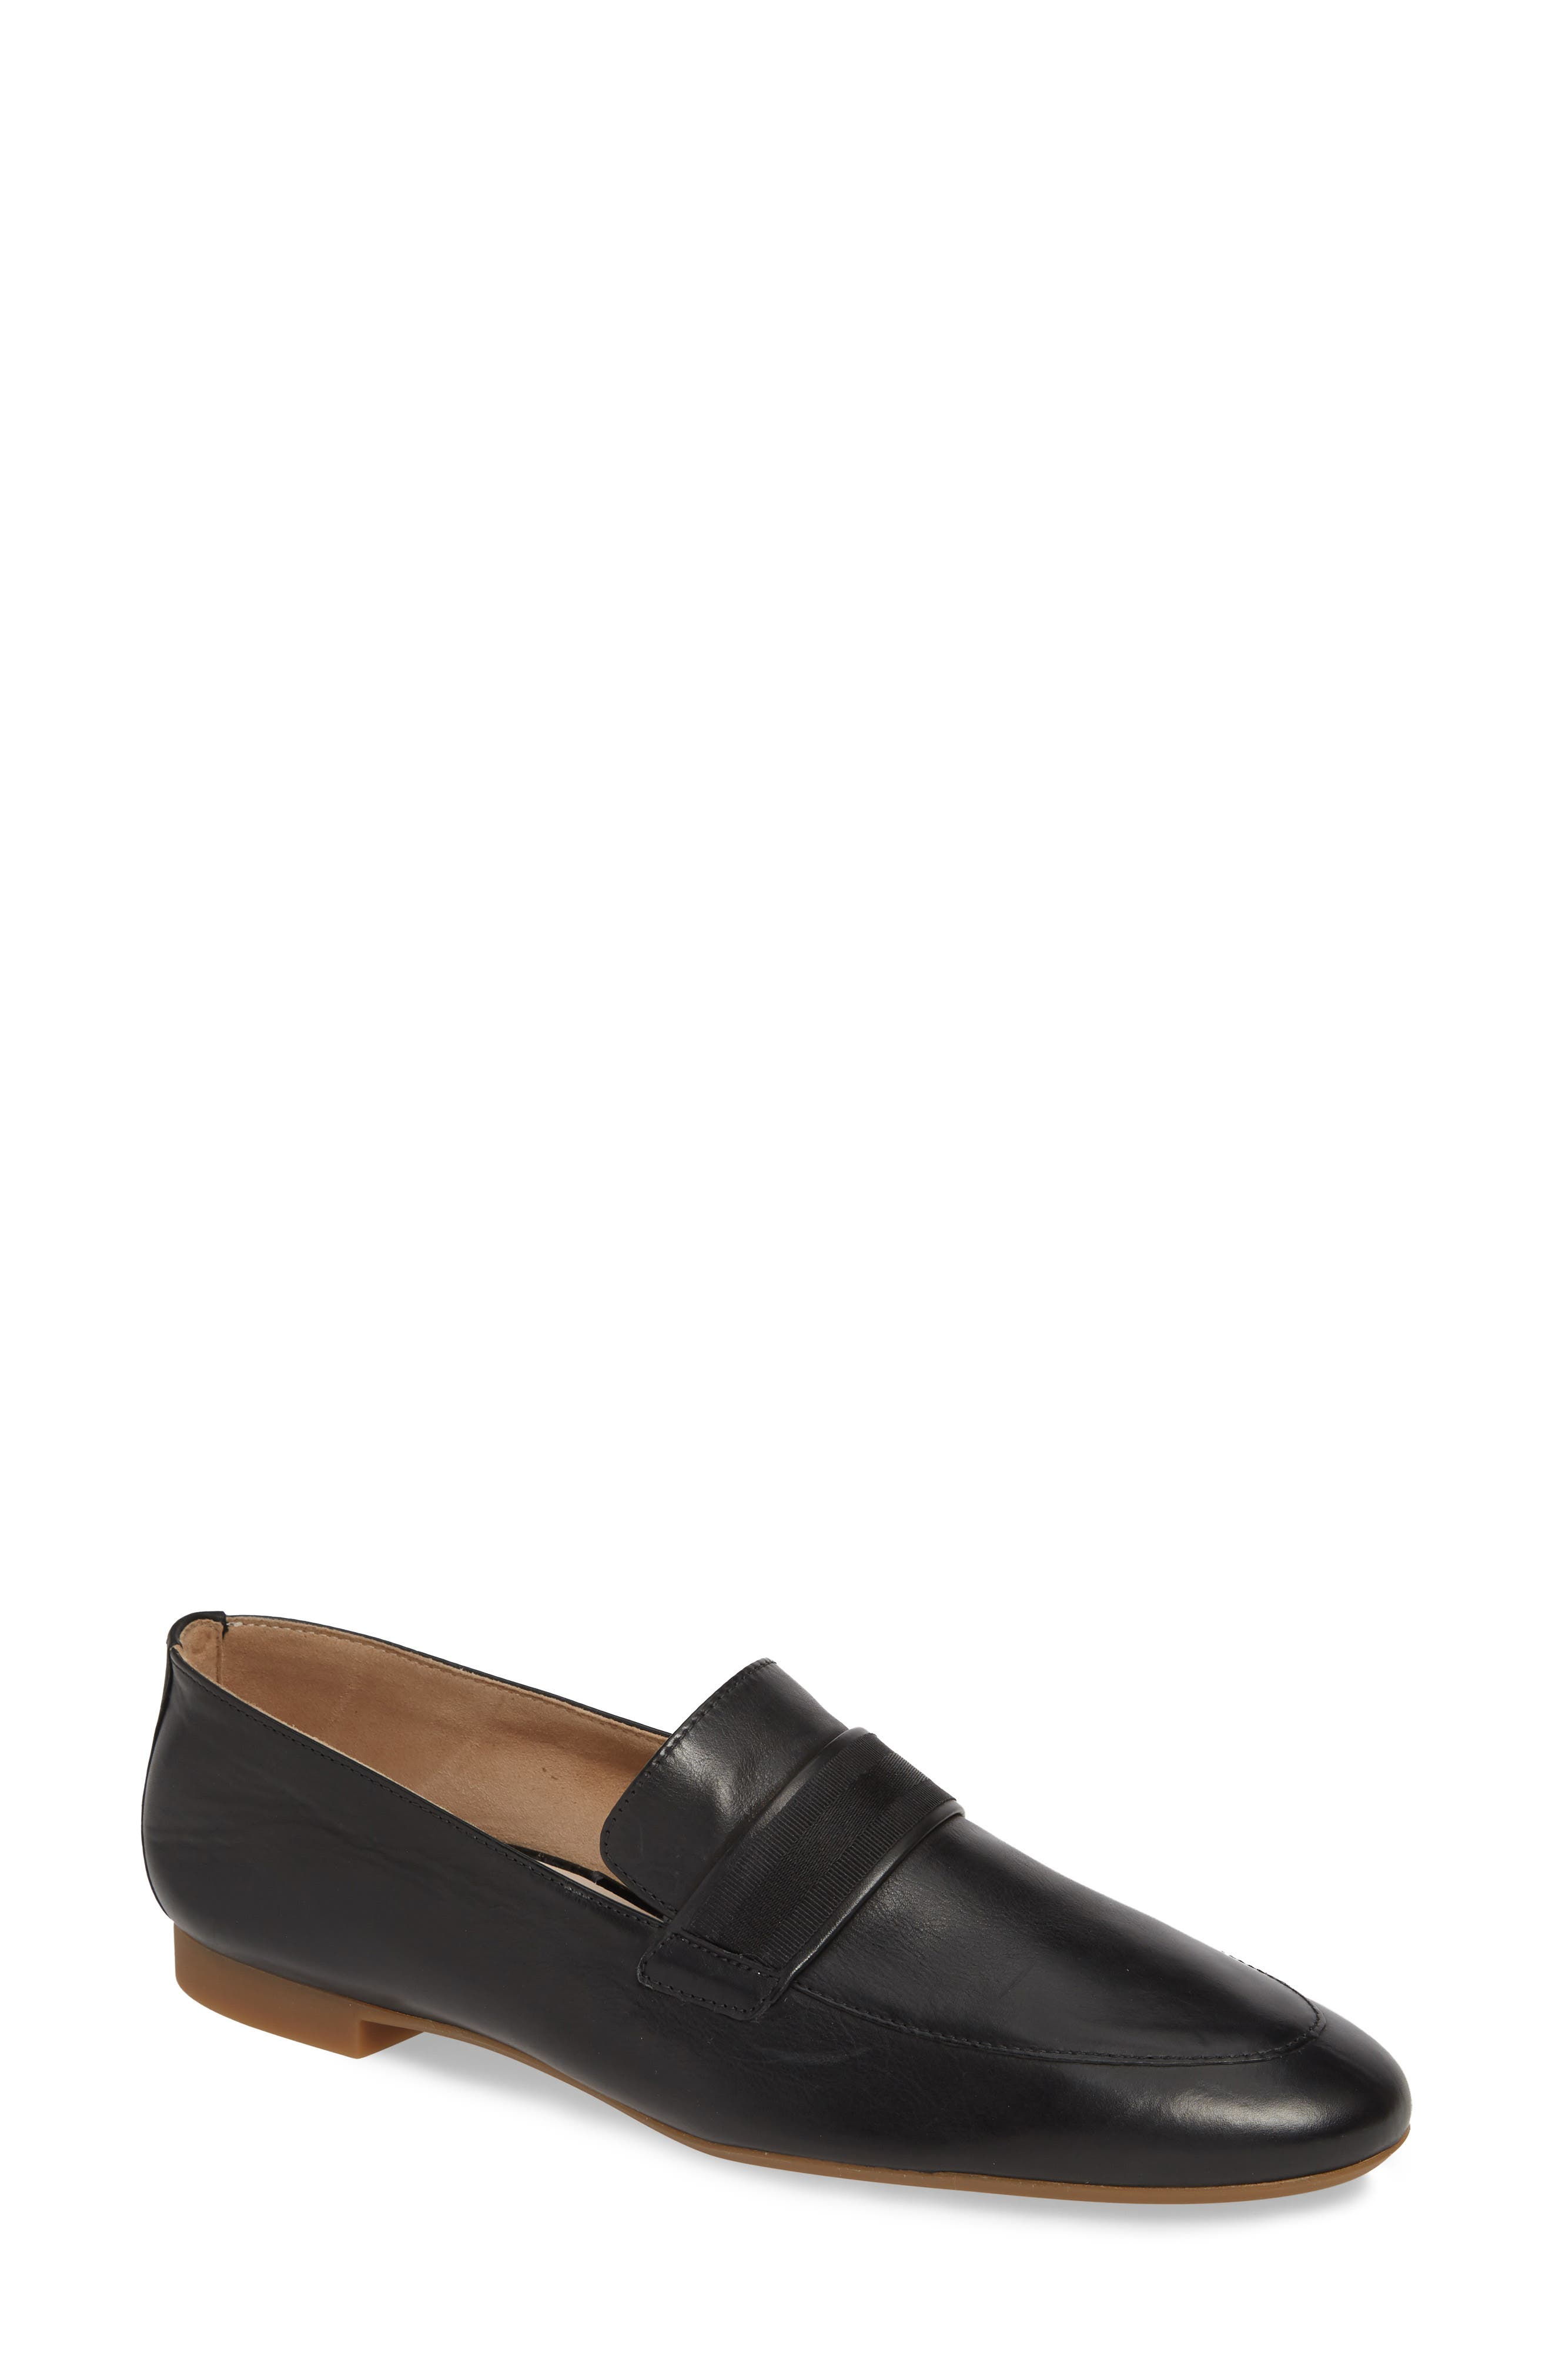 PAUL GREEN, Adelle Loafer, Main thumbnail 1, color, BLACK LEATHER